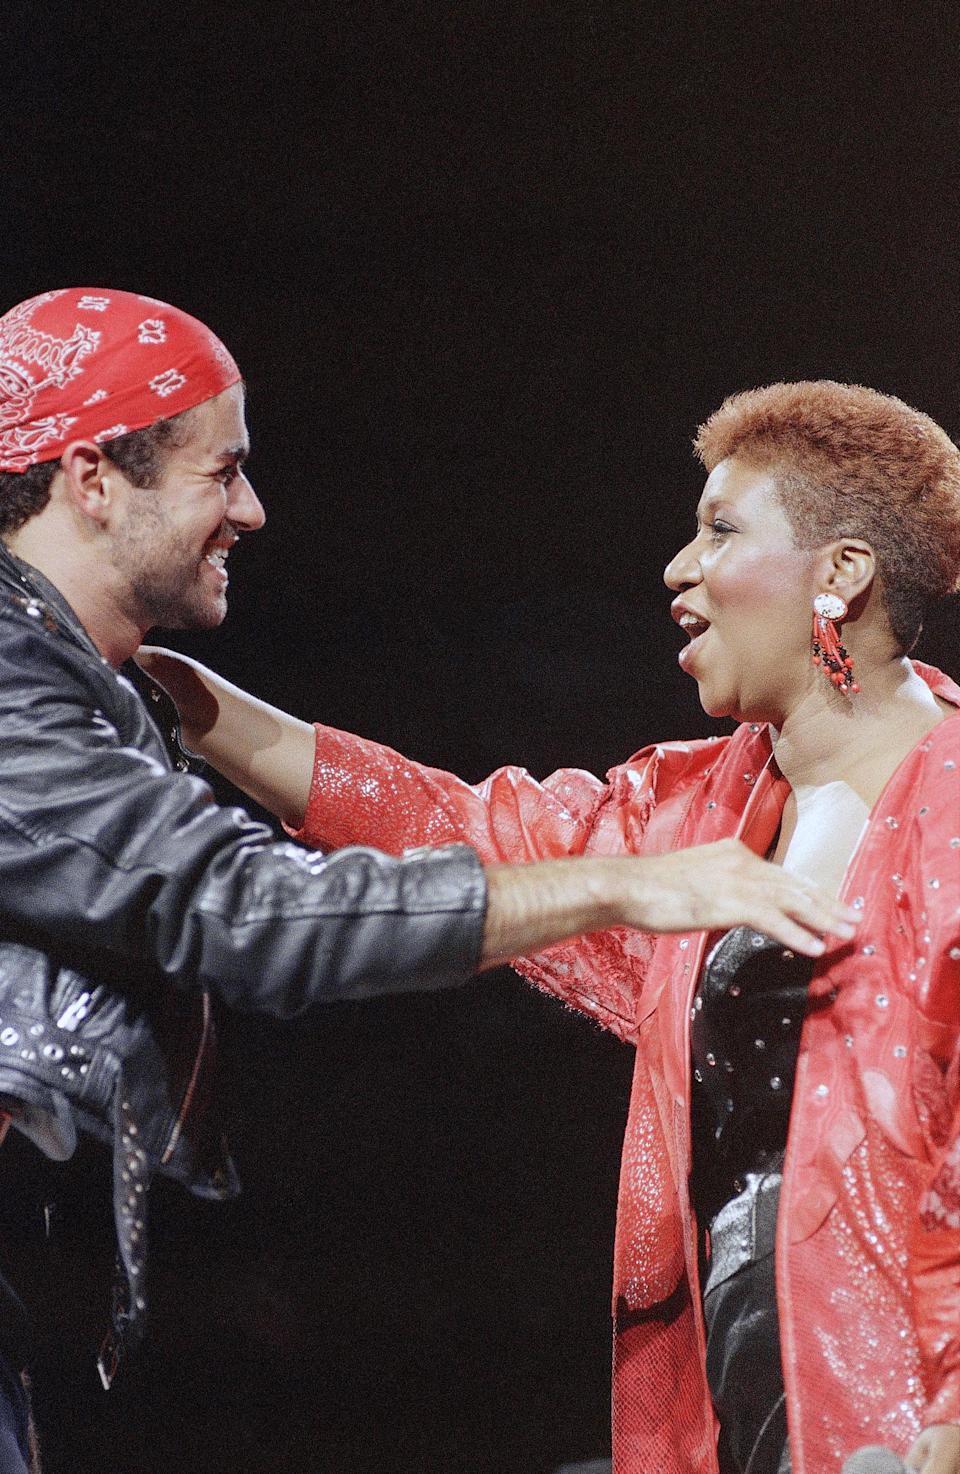 """<p>Aretha Franklin, wearing a red leather studded jacket and short auburn haircut, joins George Michael on stage during his Faith World Tour in Detroit. The duo sang their Grammy-winning hit """"I Knew You Were Waiting."""" (AP Photo/Rob Kozloff) </p>"""